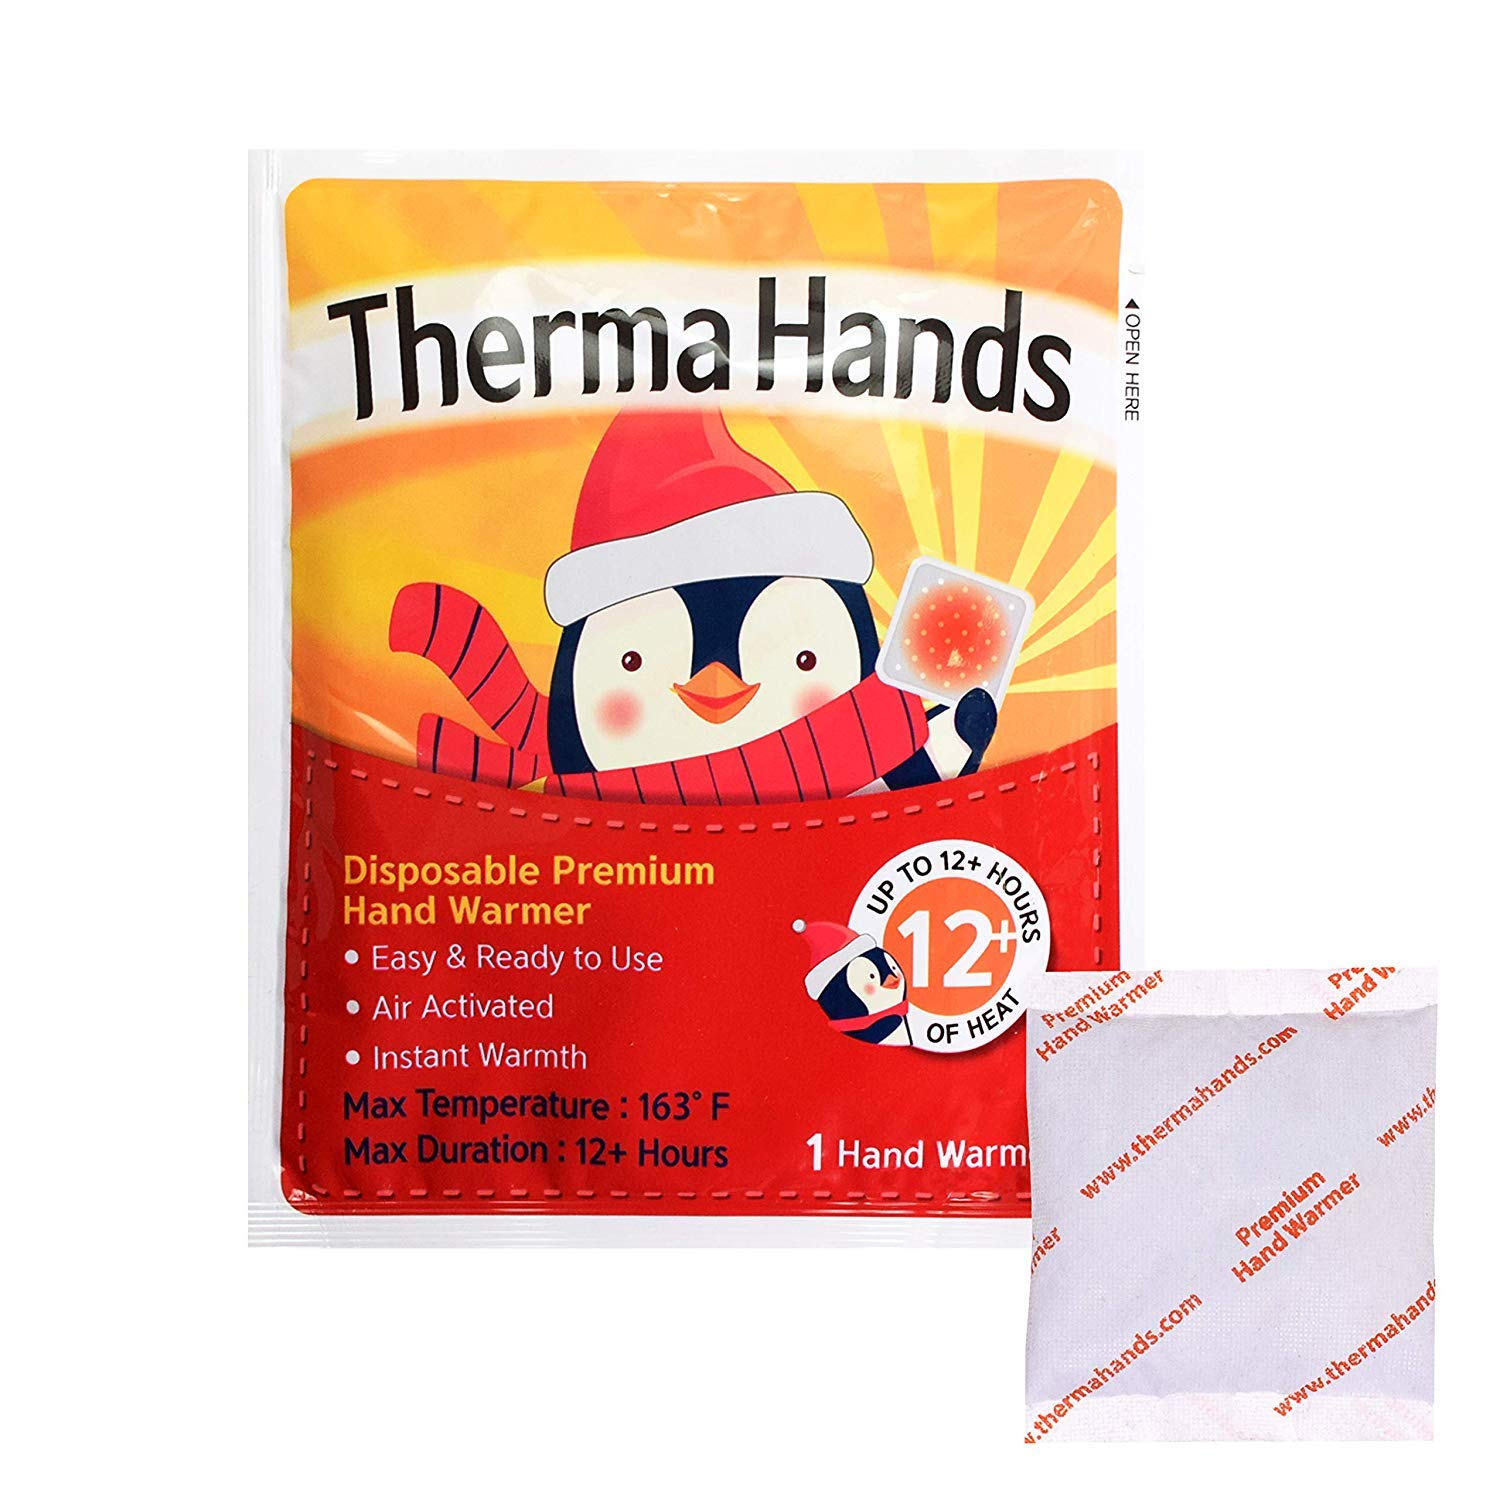 ThermaHands Hand Warmers (5 Packs) - Premium Quality (Size: 3.5 inch x 4 inch, Duration: 12+ Hours, Max Temp: 163 F) Air-Activated, Convenient, Safe, Natural, Odorless, Long Lasting Warmers